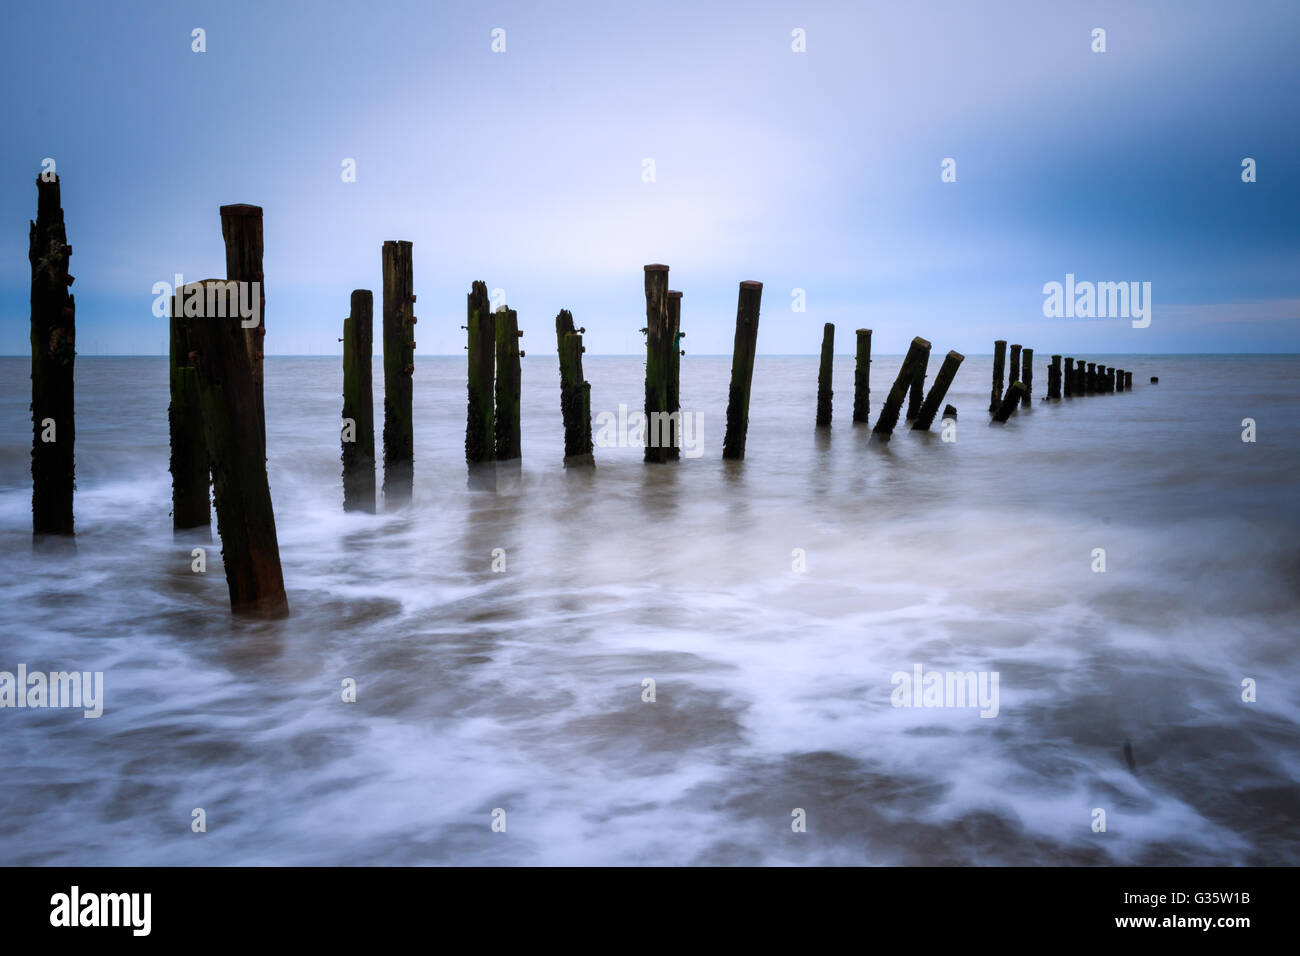 Wooden groynes on the beach with long exposure. - Stock Image